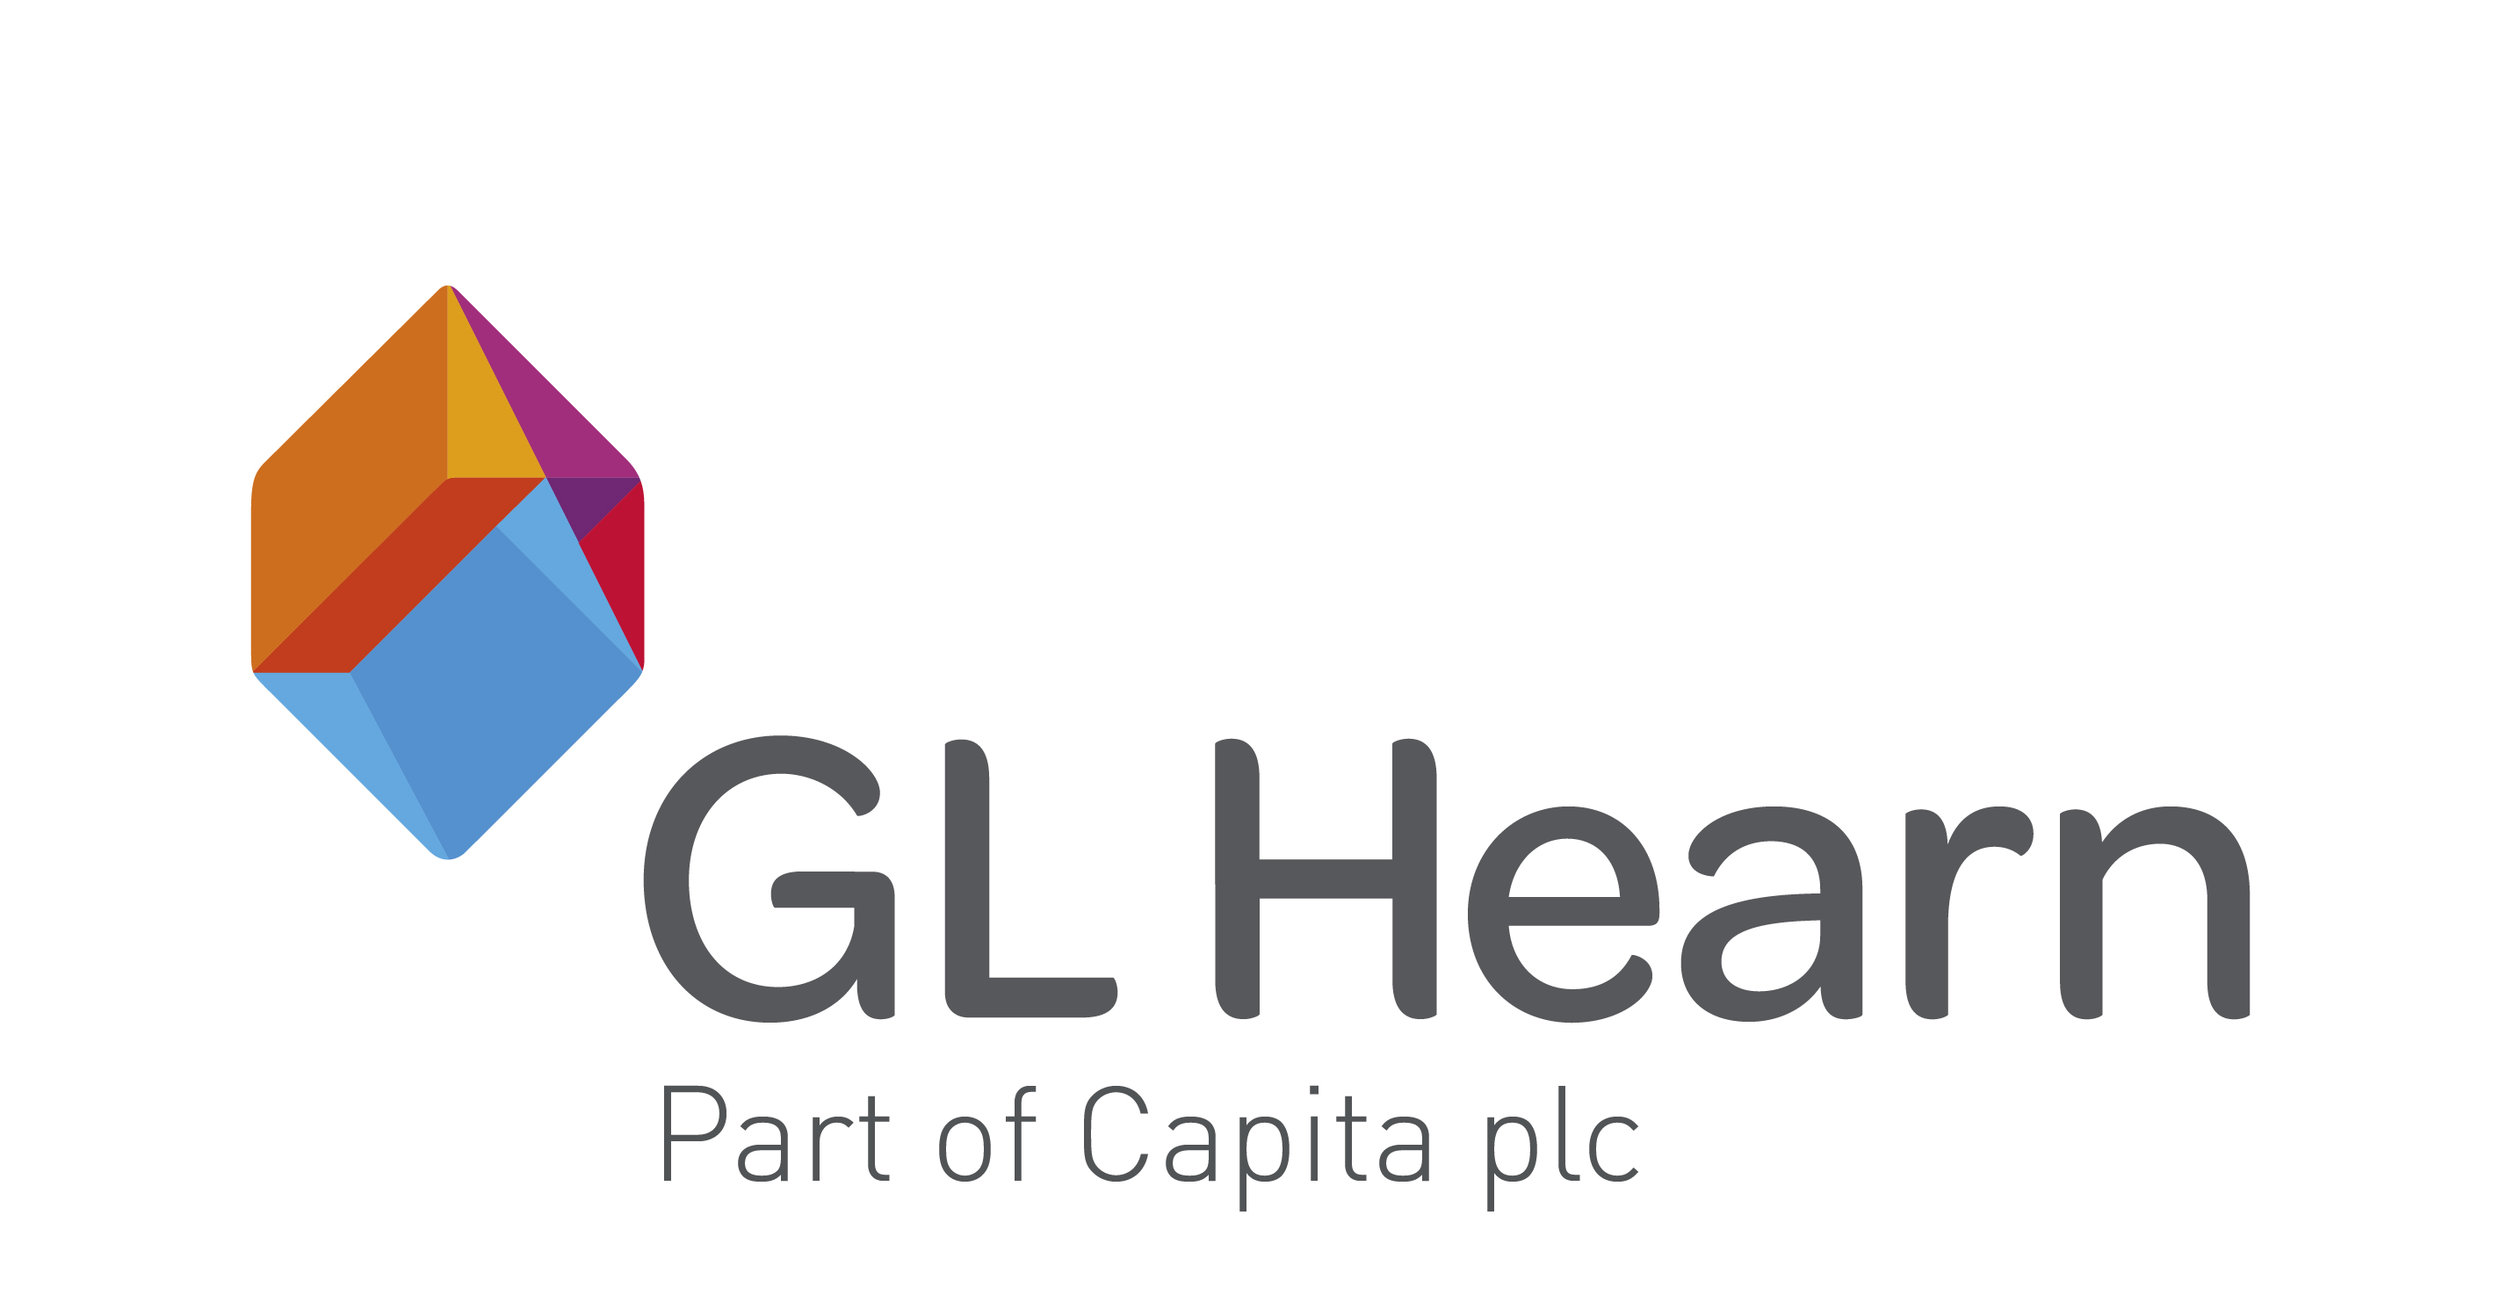 GL Hearn logo part of Capita plc.jpeg